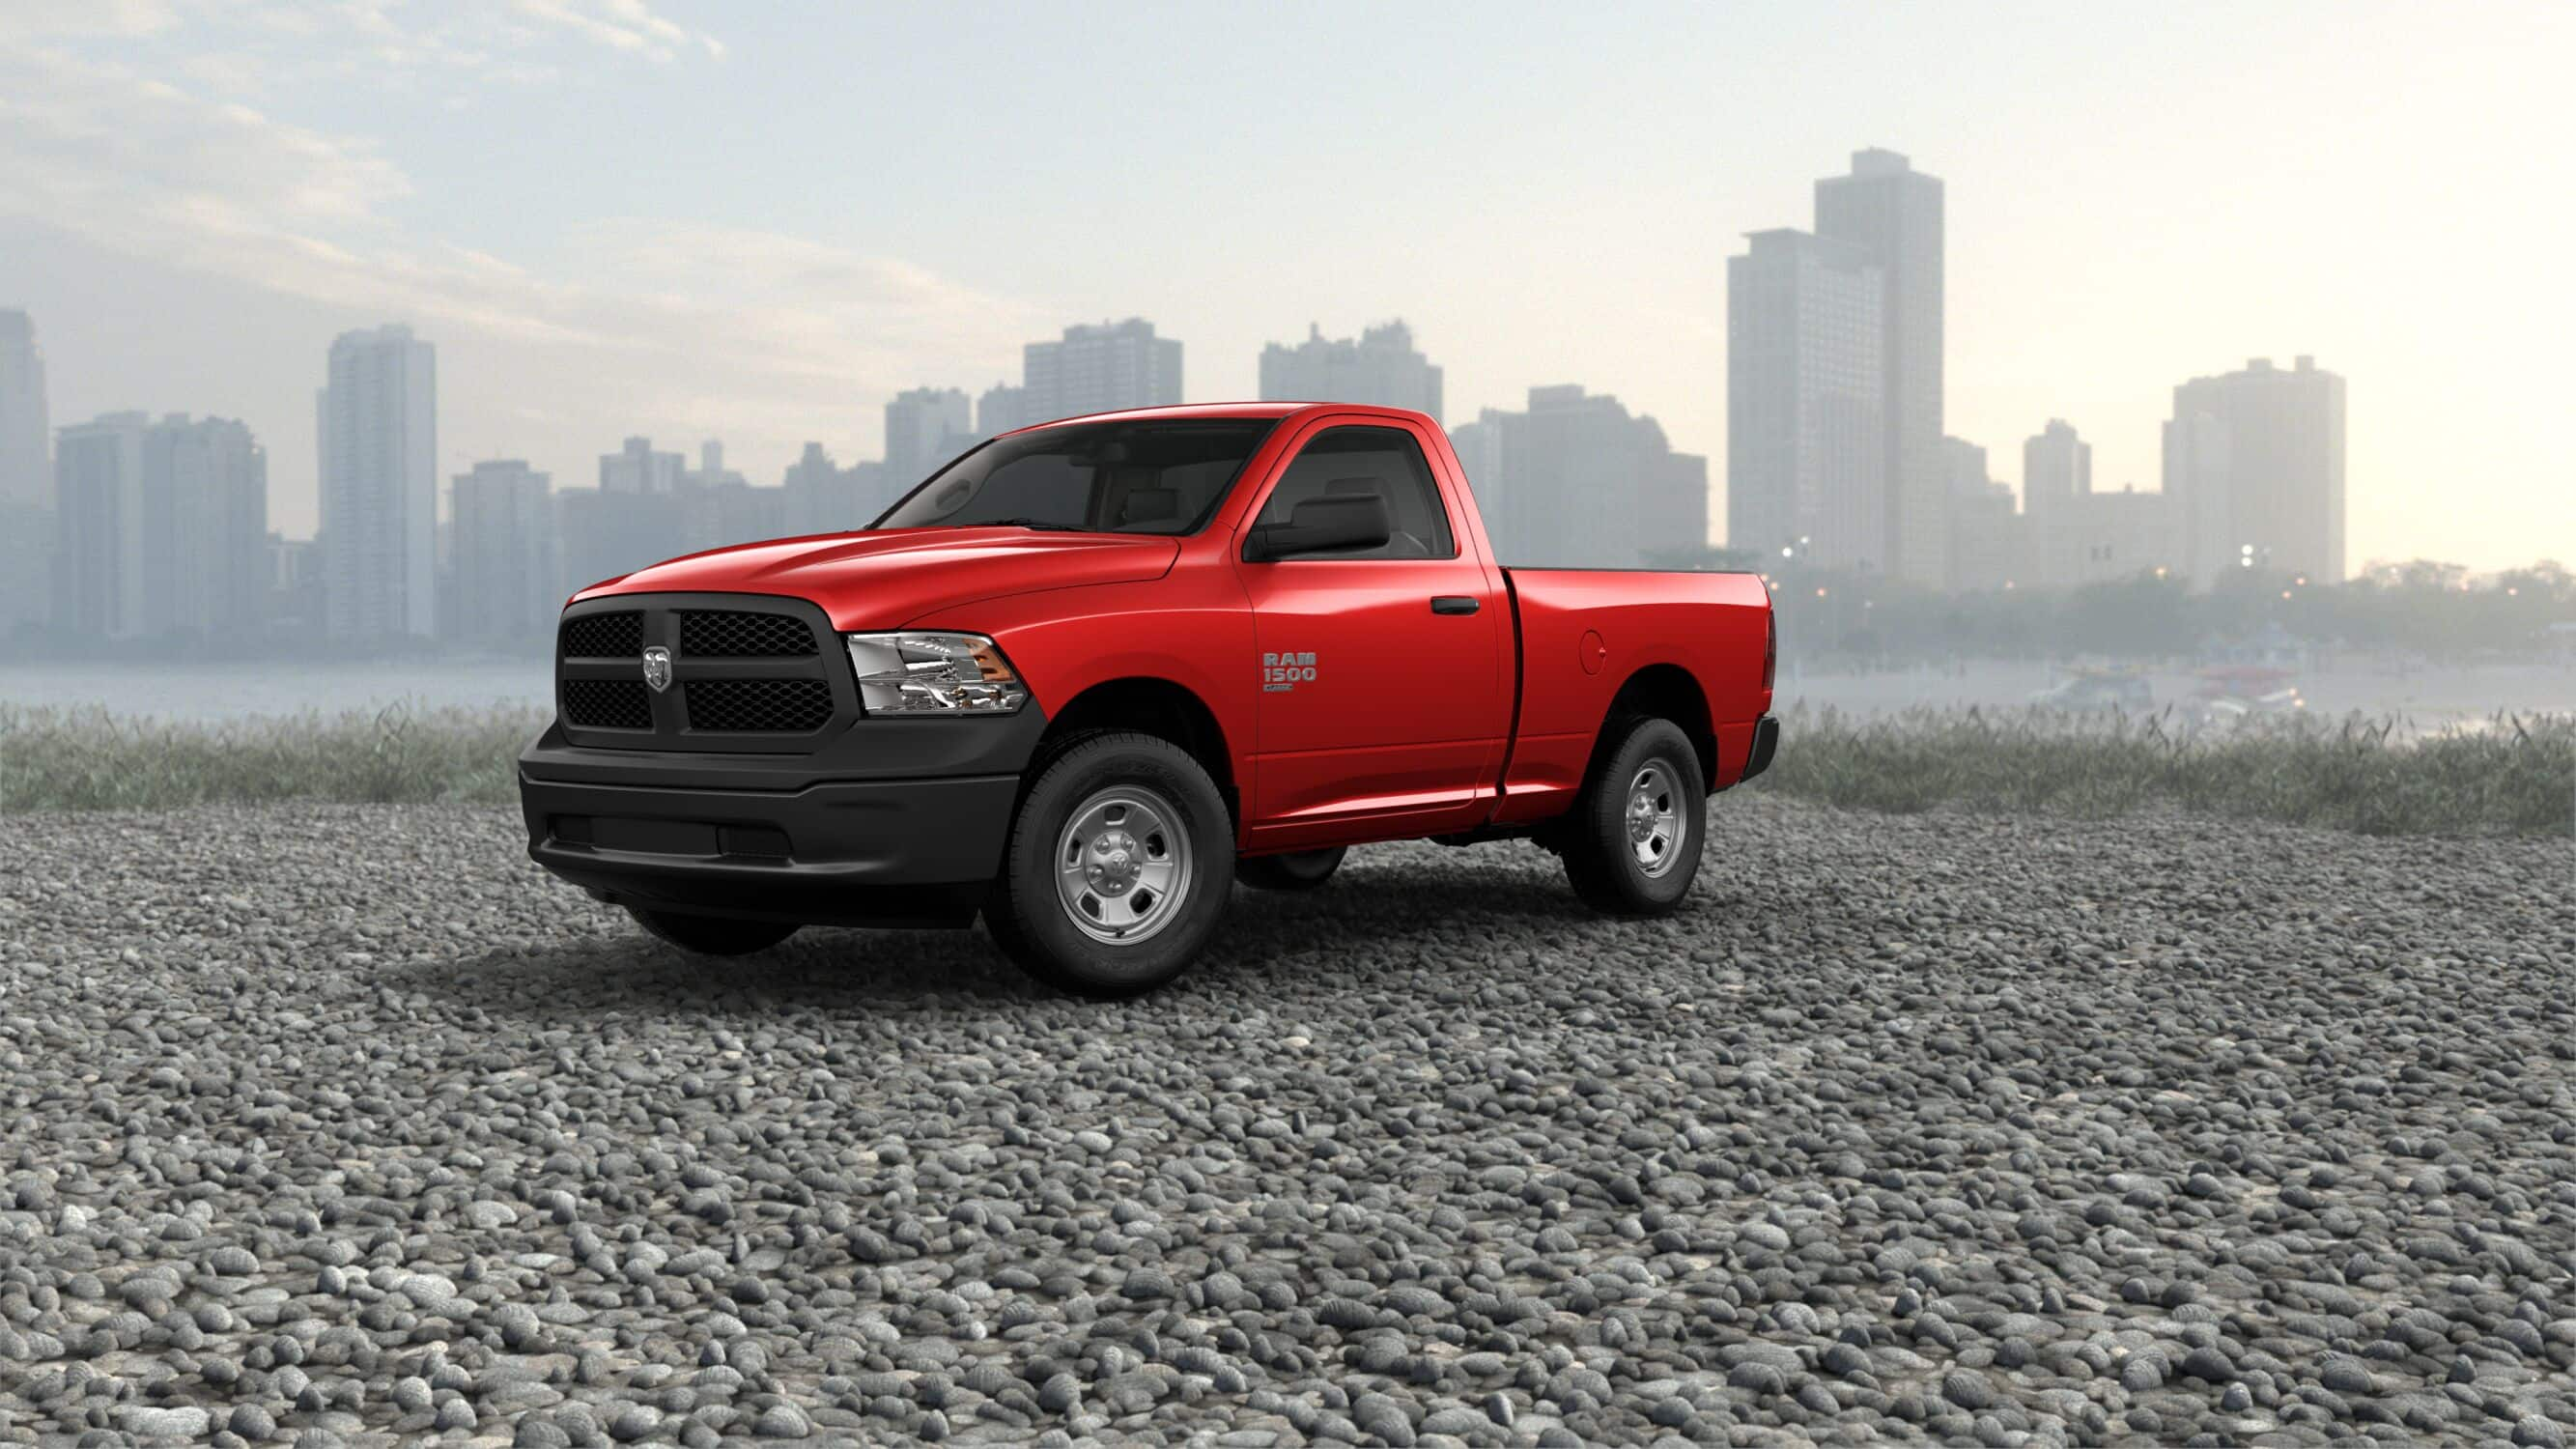 2019 Ram 1500 Classic Tradesman Red Exterior Front Picture